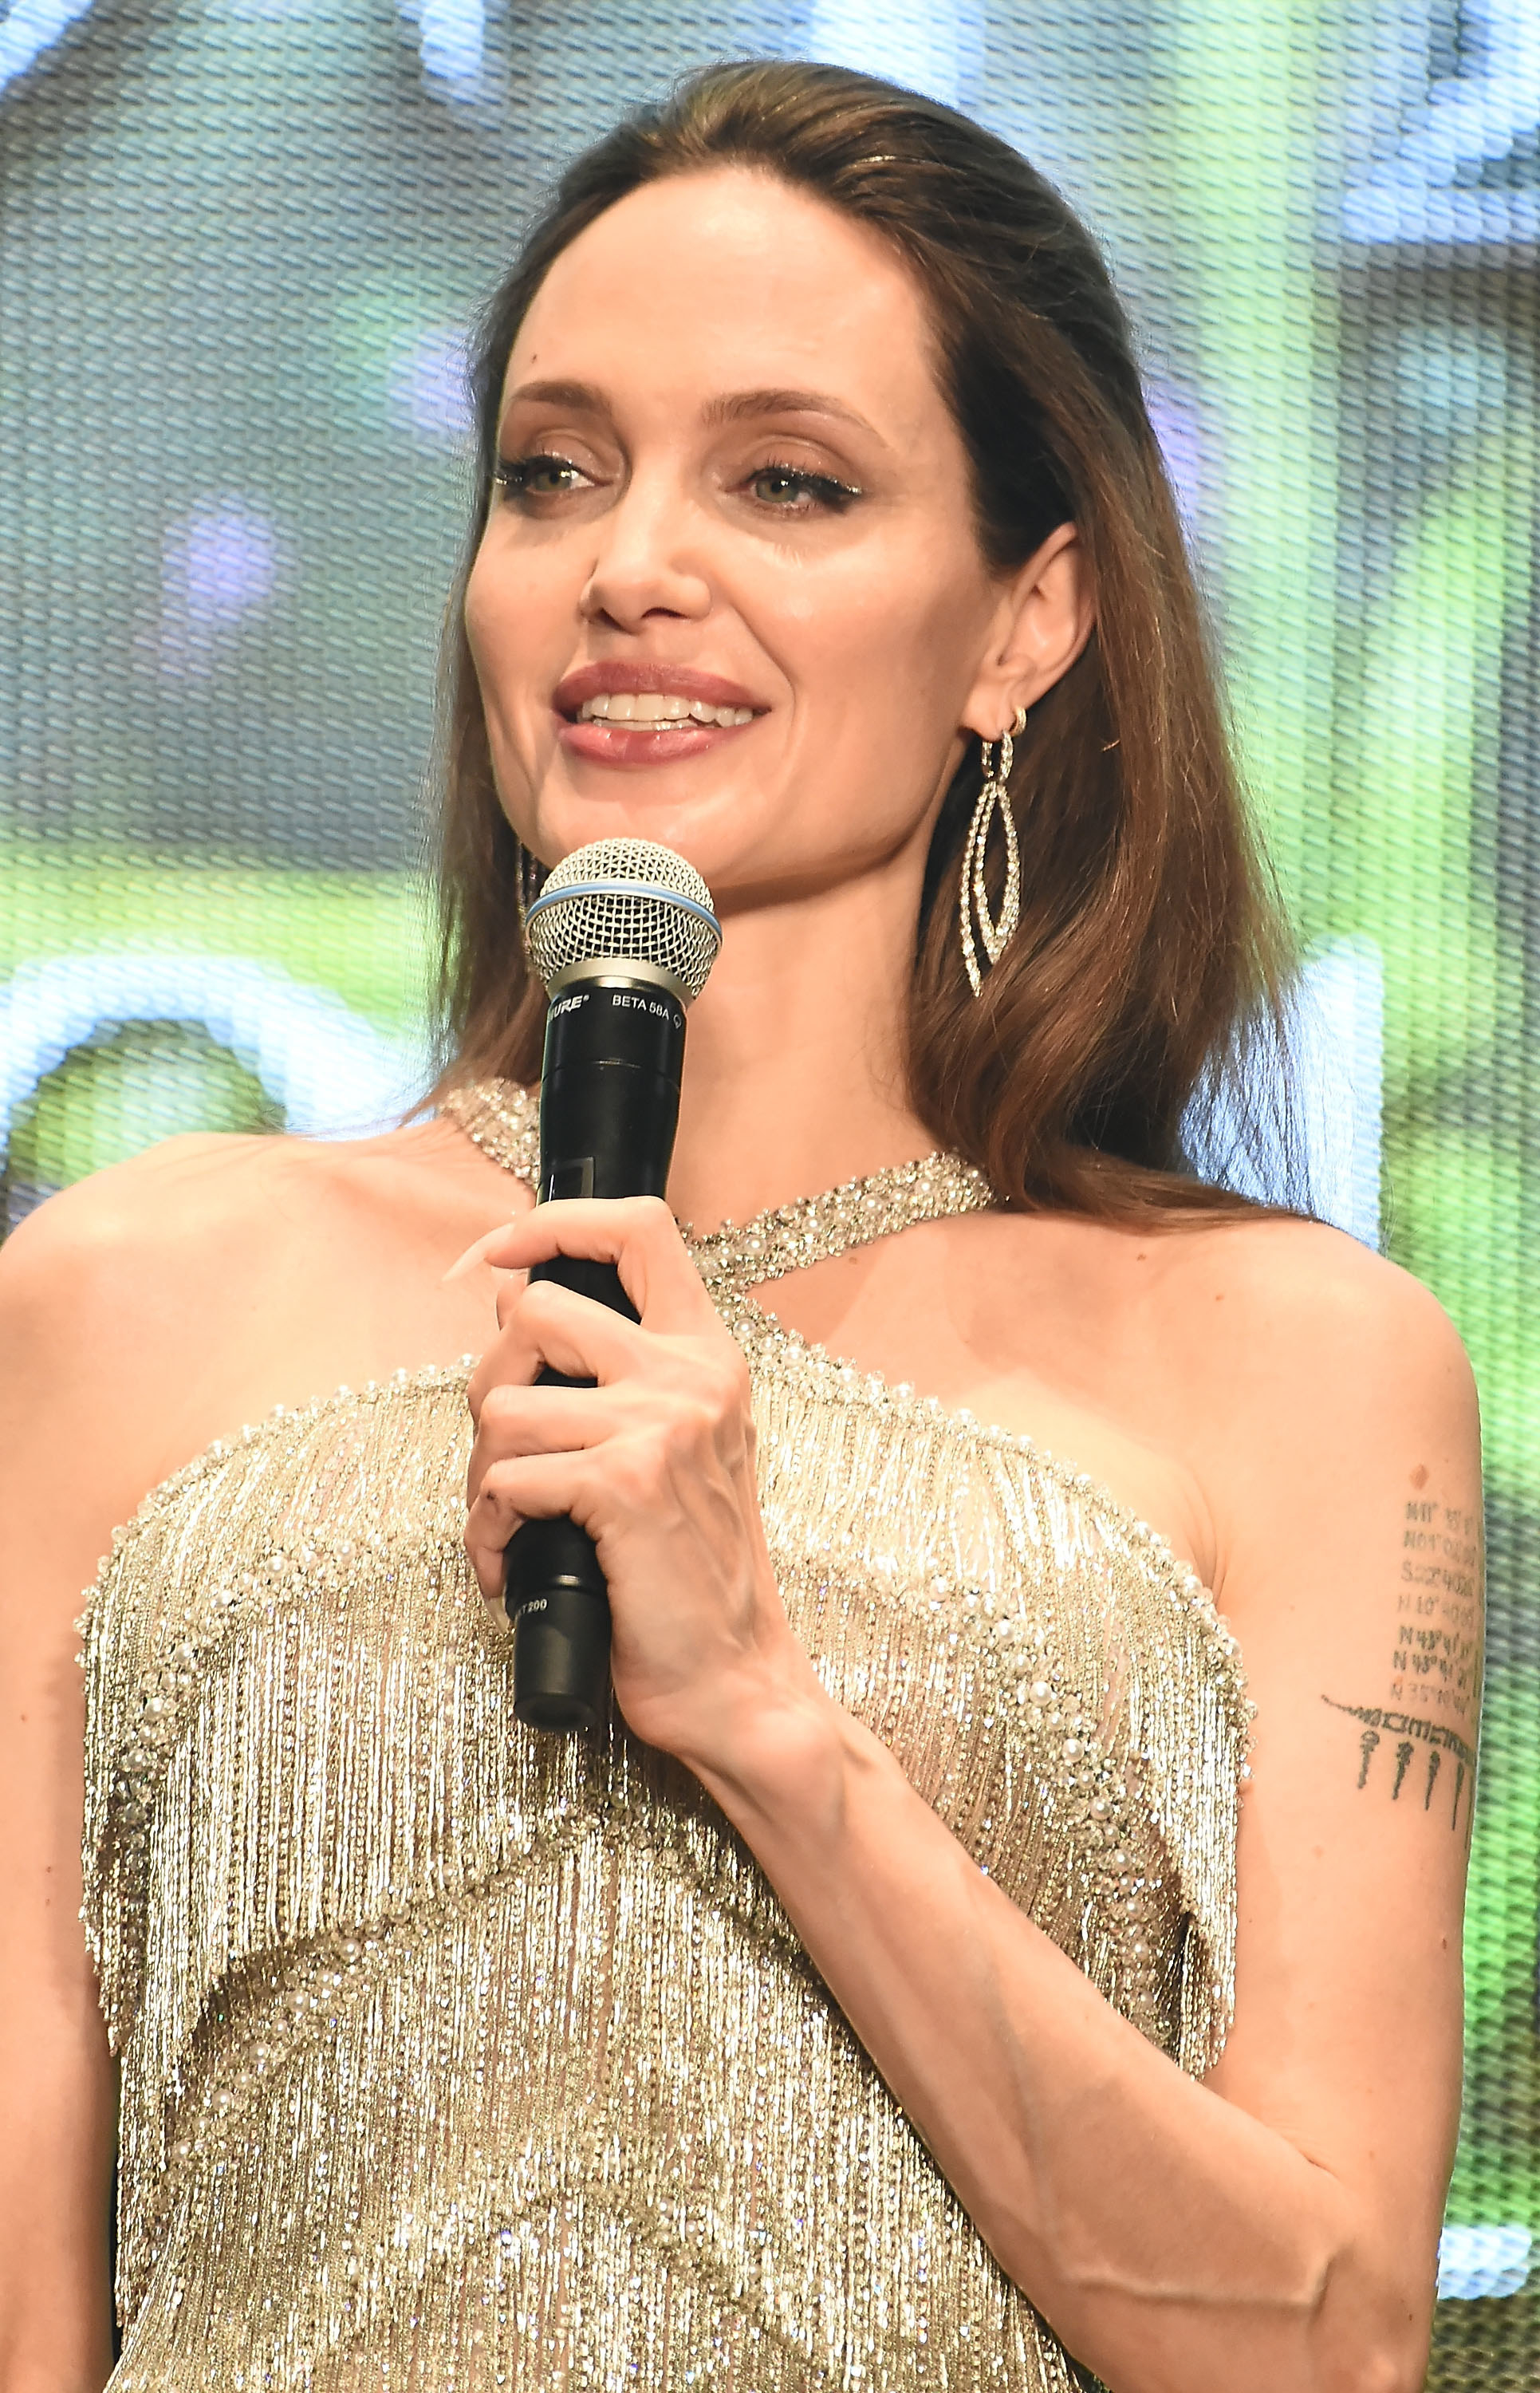 Angelina Jolie attends the Japan premiere of 'Maleficent: Mistress of Evil' at Roppongi Hills arena on October 3, 2019 in Tokyo, Japan